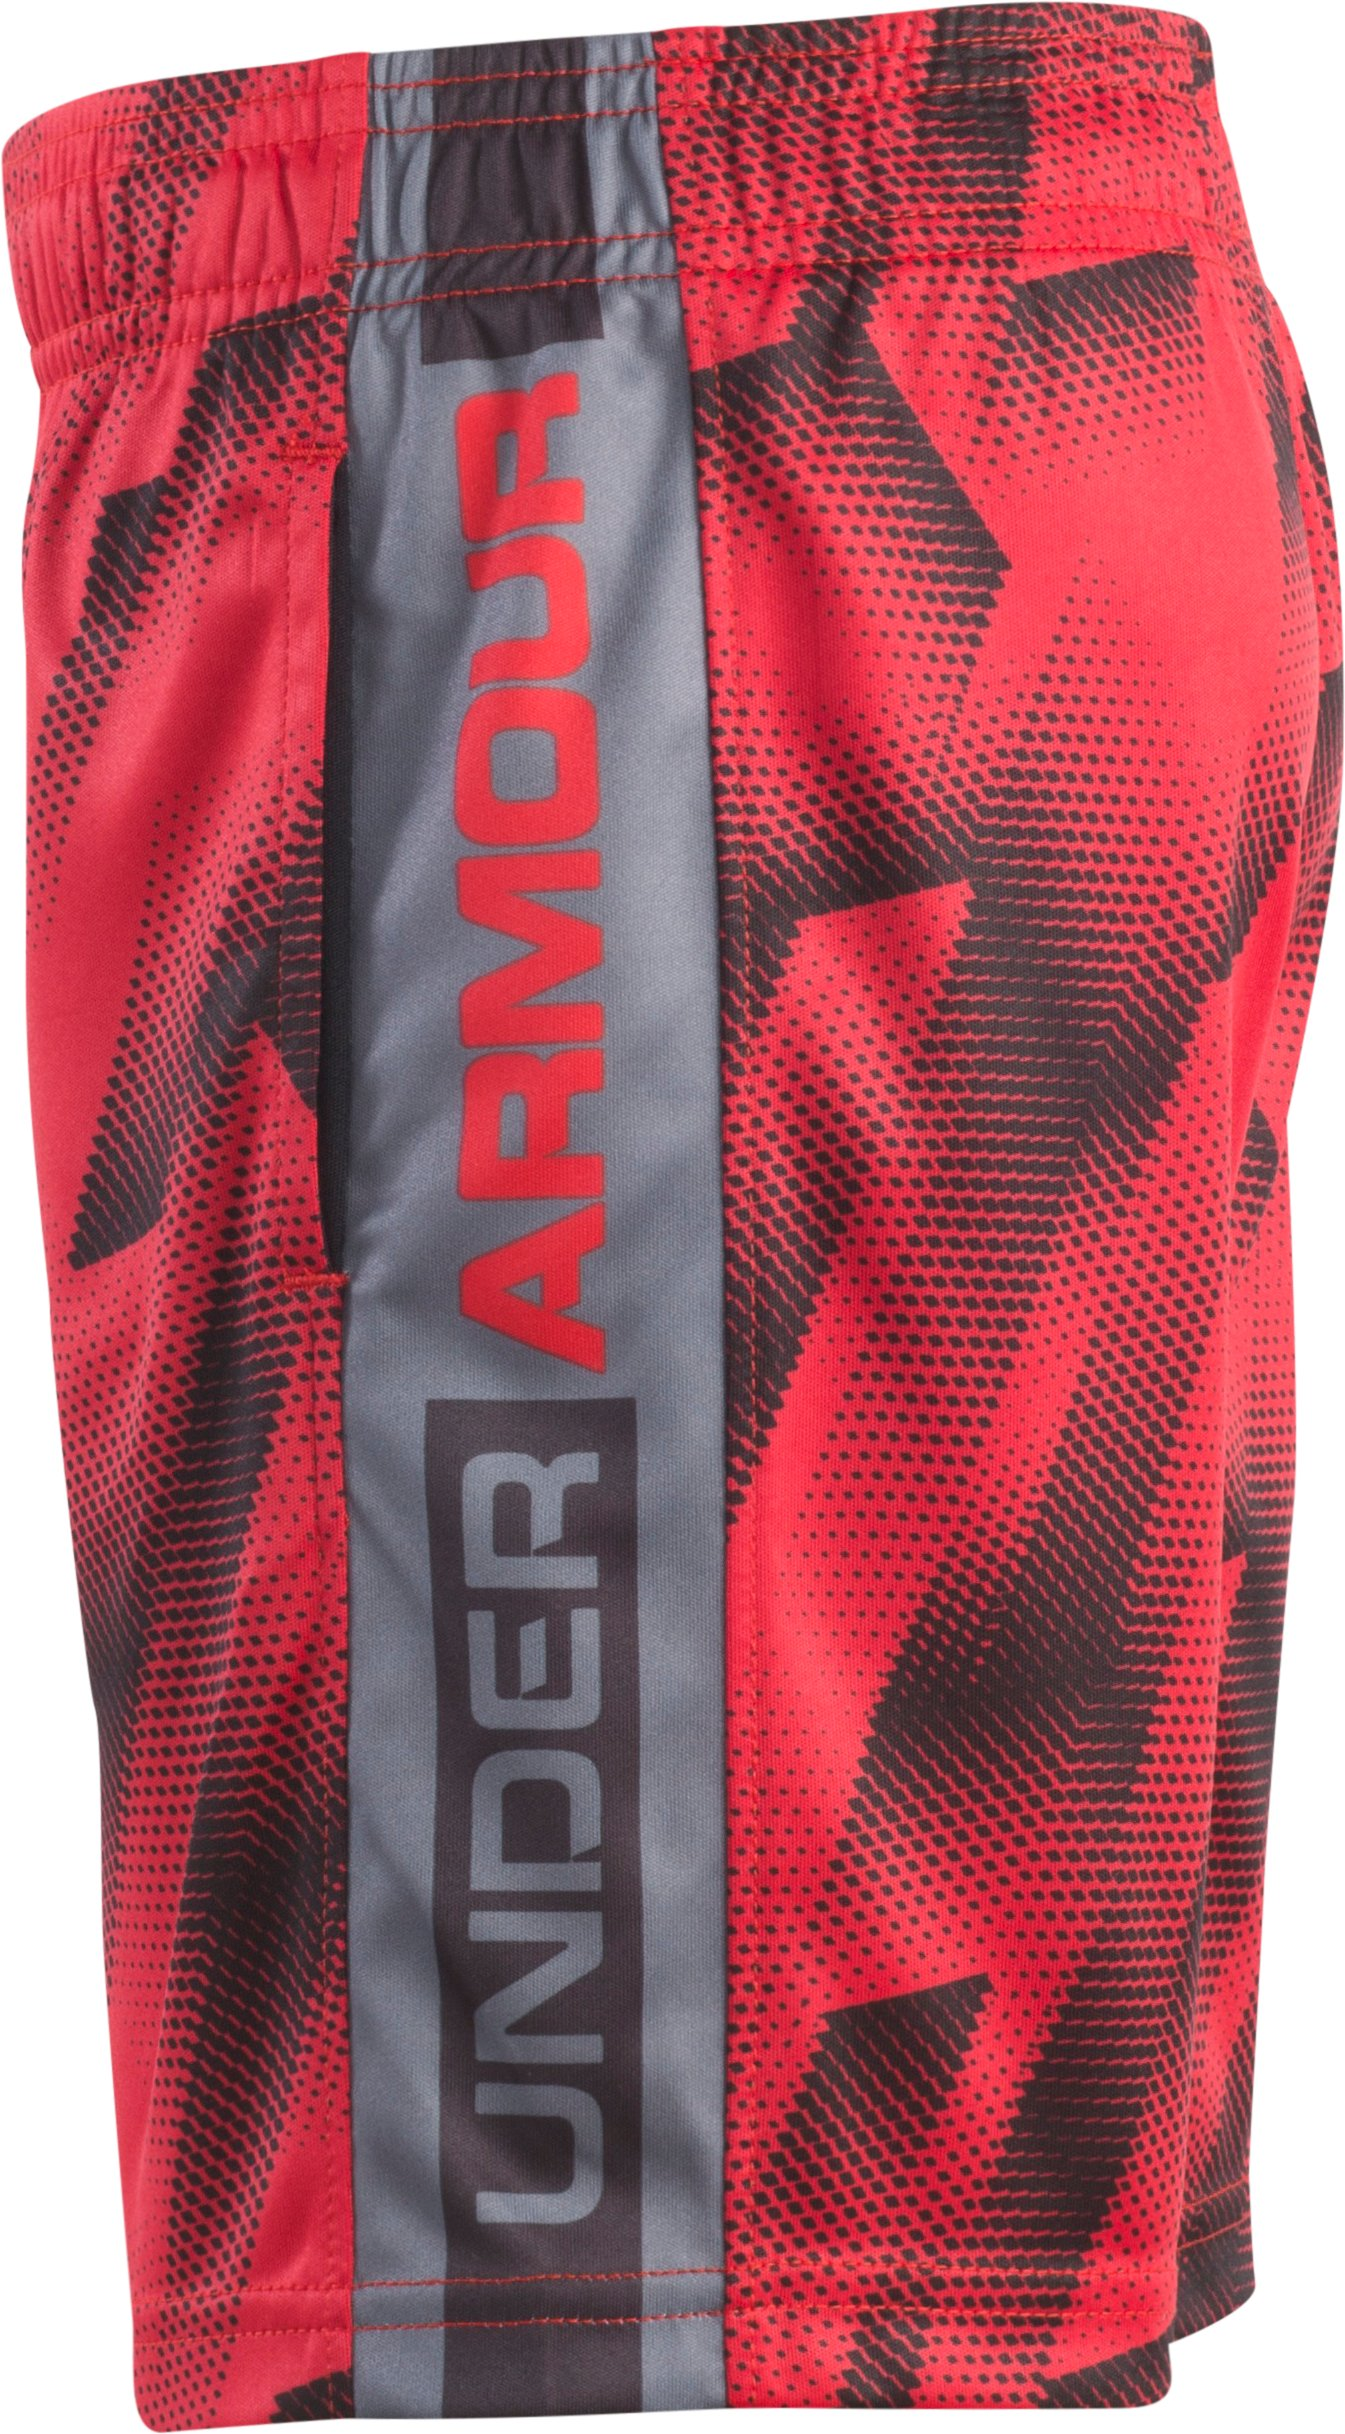 Boys' Toddler UA Anatomic Striker Shorts, Red, undefined